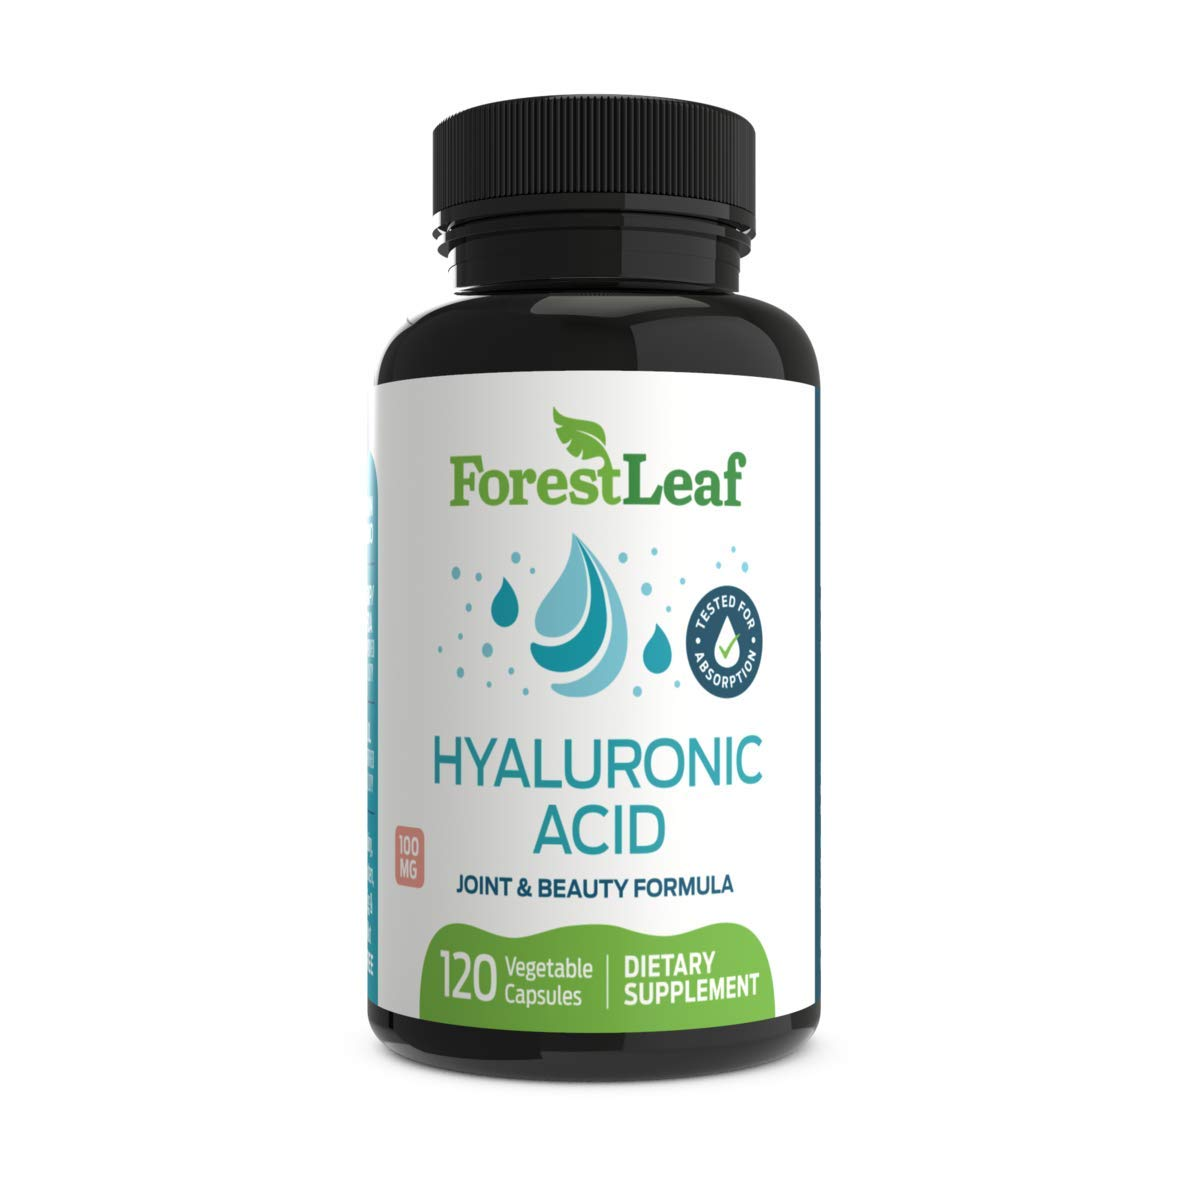 Hyaluronic Acid Dietary Supplement, 100 mg - 120 Vegetable Capsules - Joints, Bones and Connective Tissue Formula - Daily Anti Aging Beauty Serum for Healthy Skin, Hair and Eyes - by ForestLeaf by ForestLeaf